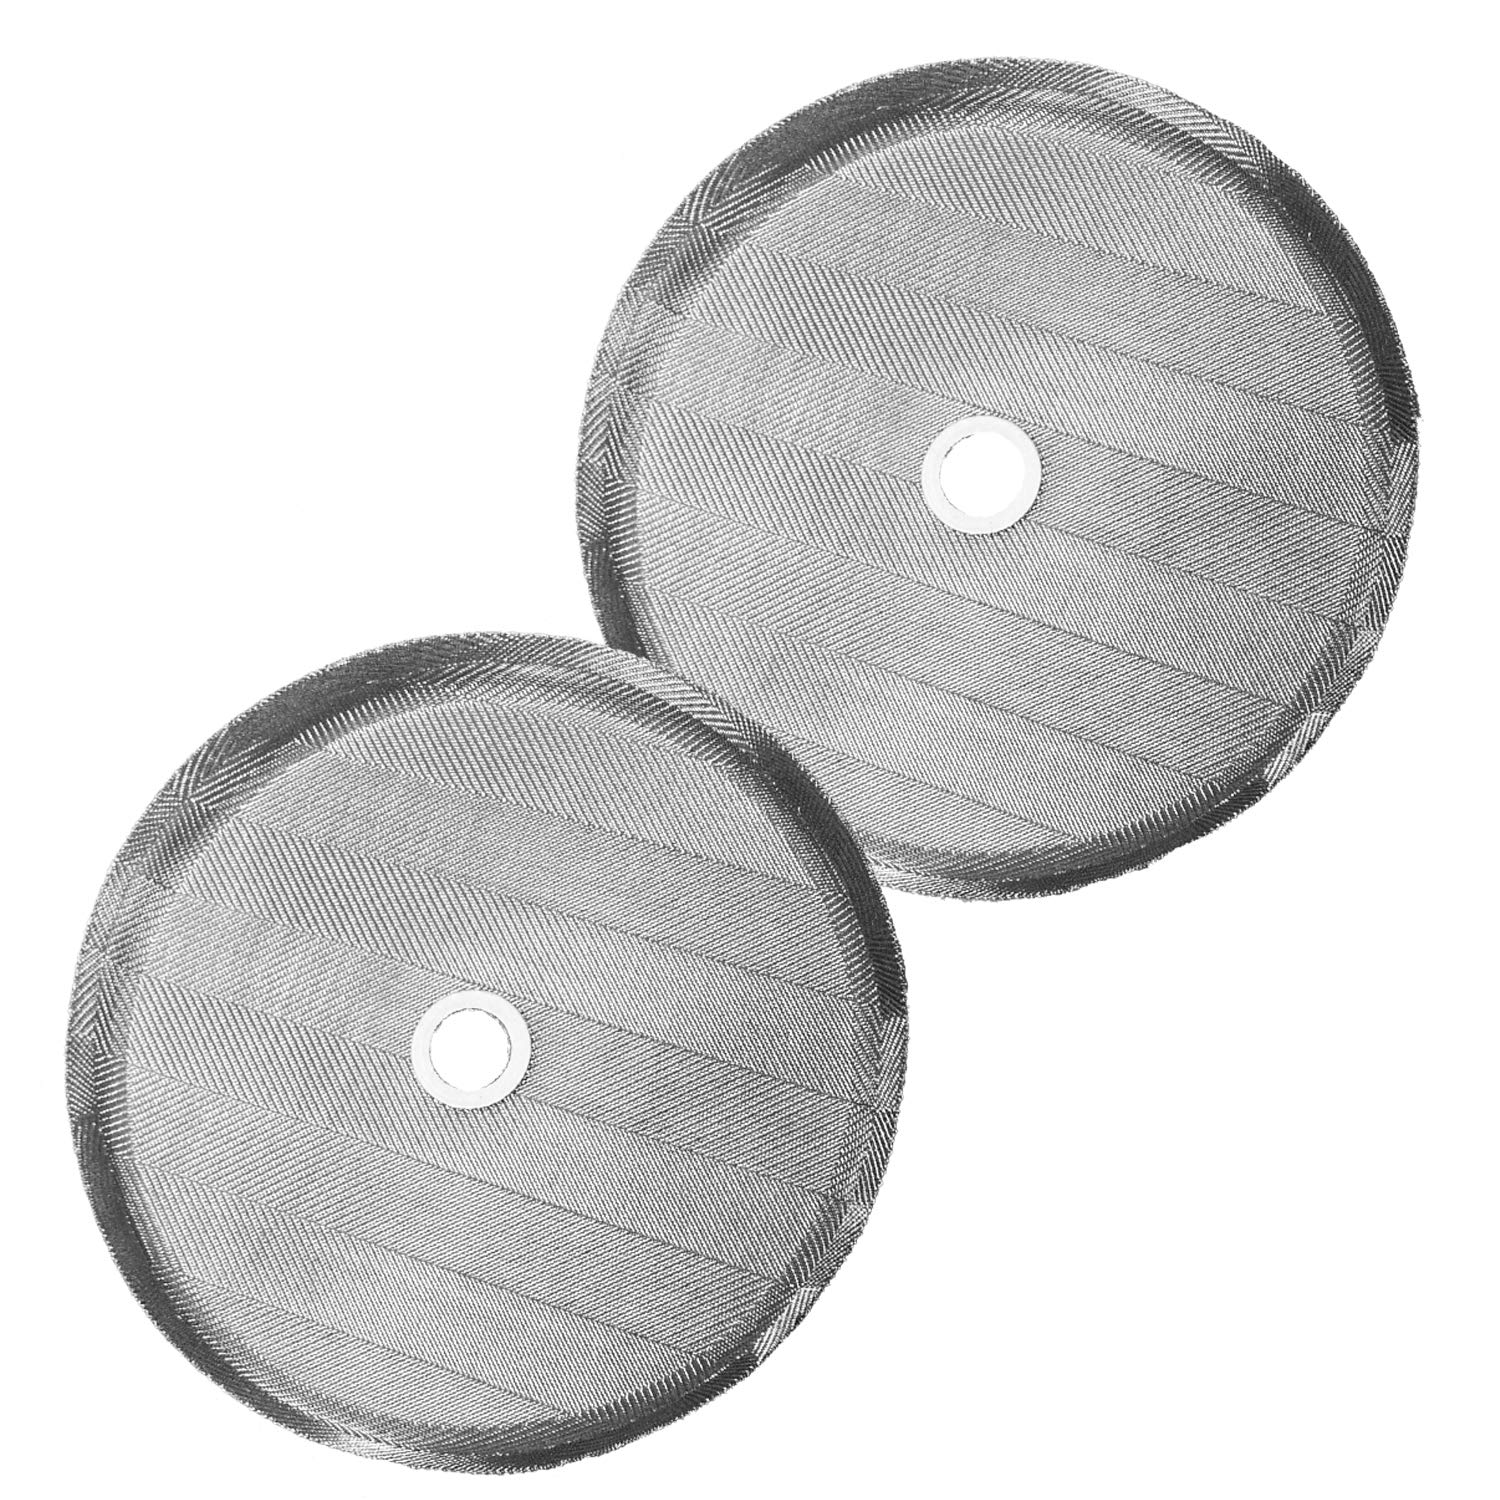 French Press Replacement Filter Screen (2pack) - Includes Metal Center Ring - Universal 8-Cup Stainless Steel Reusable Filter by Gold Lion Gear